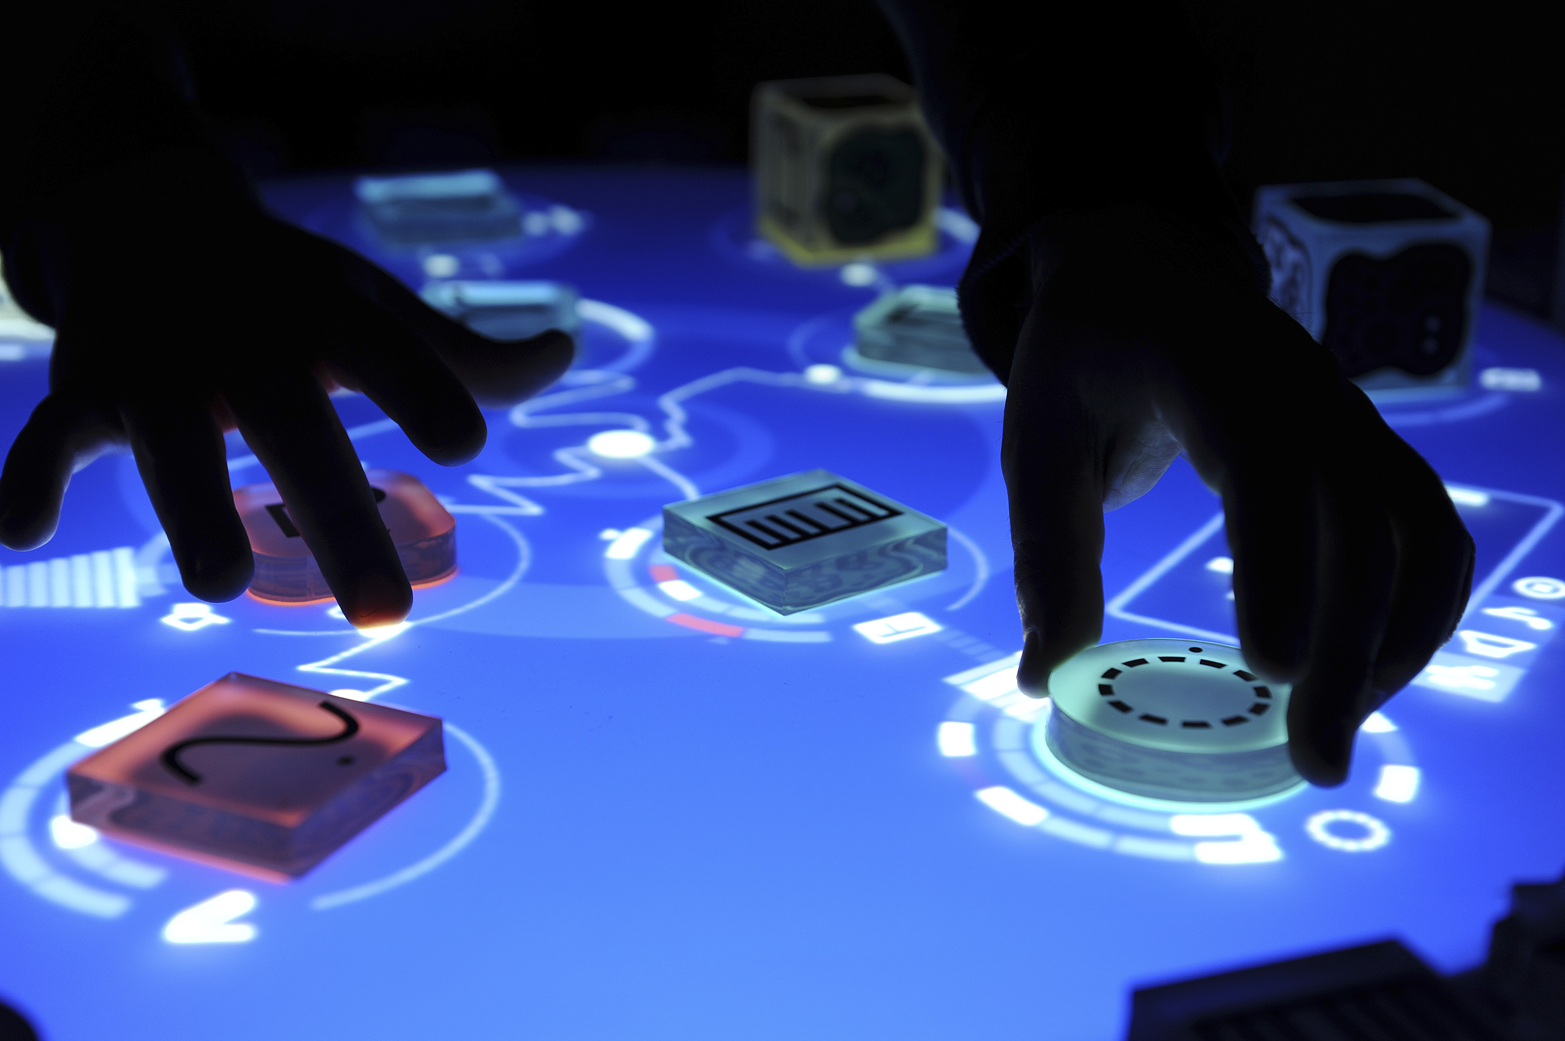 The Reactable is a musical instrument with a tangible interface (image: Reactable/Massimo Boldrin).